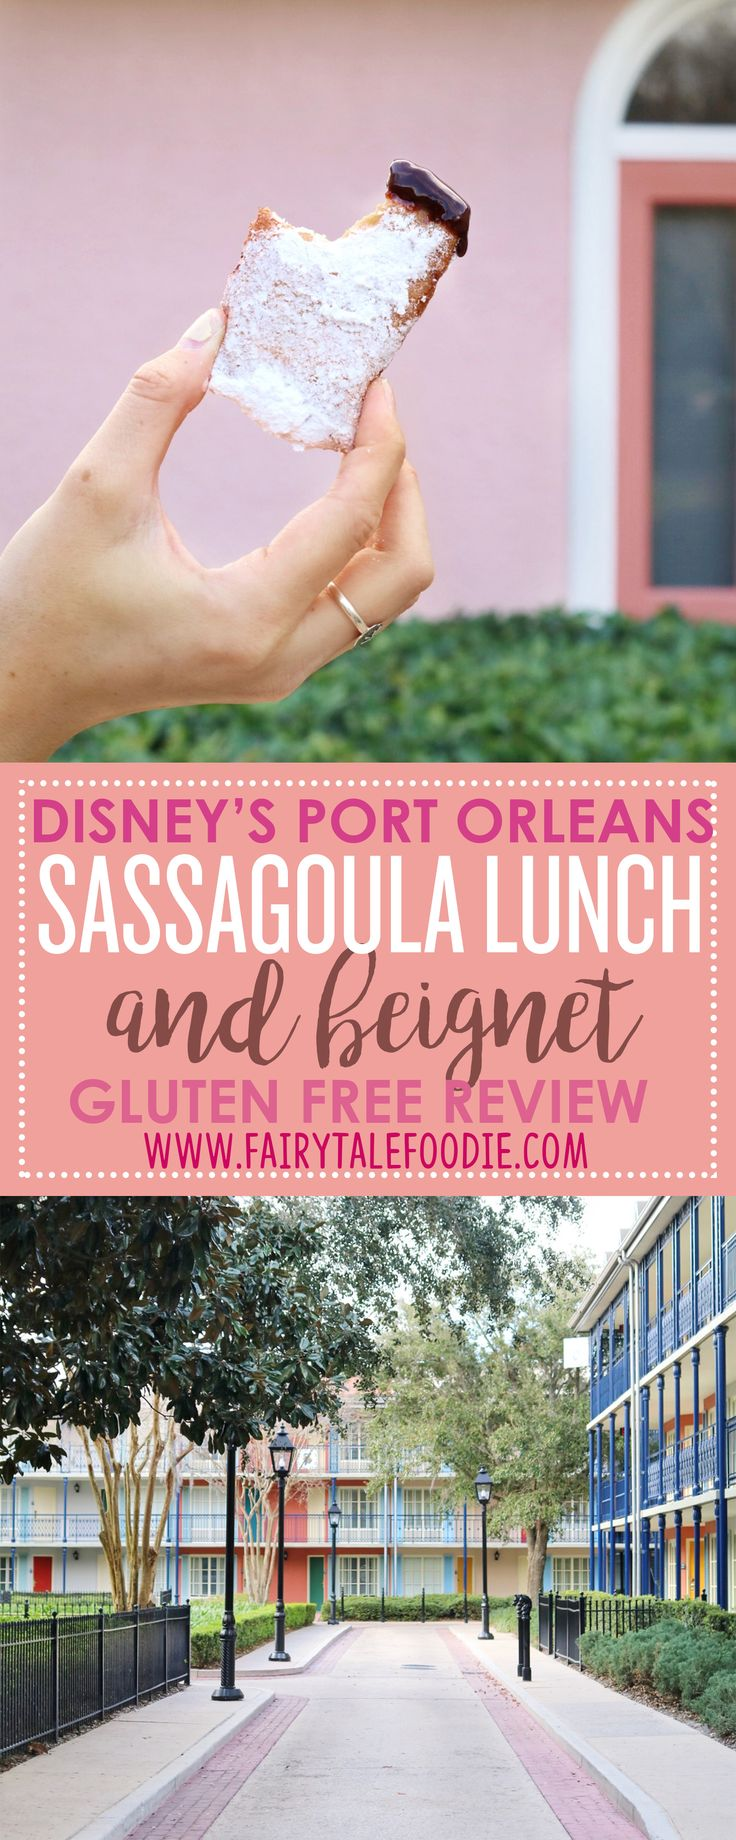 Sassagoula Food Factory at Walt Disney World's Port Orleans Resort Quick Service and BEIGNET Gluten Free Dining Review by FairytaleFoodie.com  . Disney Dining I Disney Vacation Tips I Disney Gluten Free I Disney Food